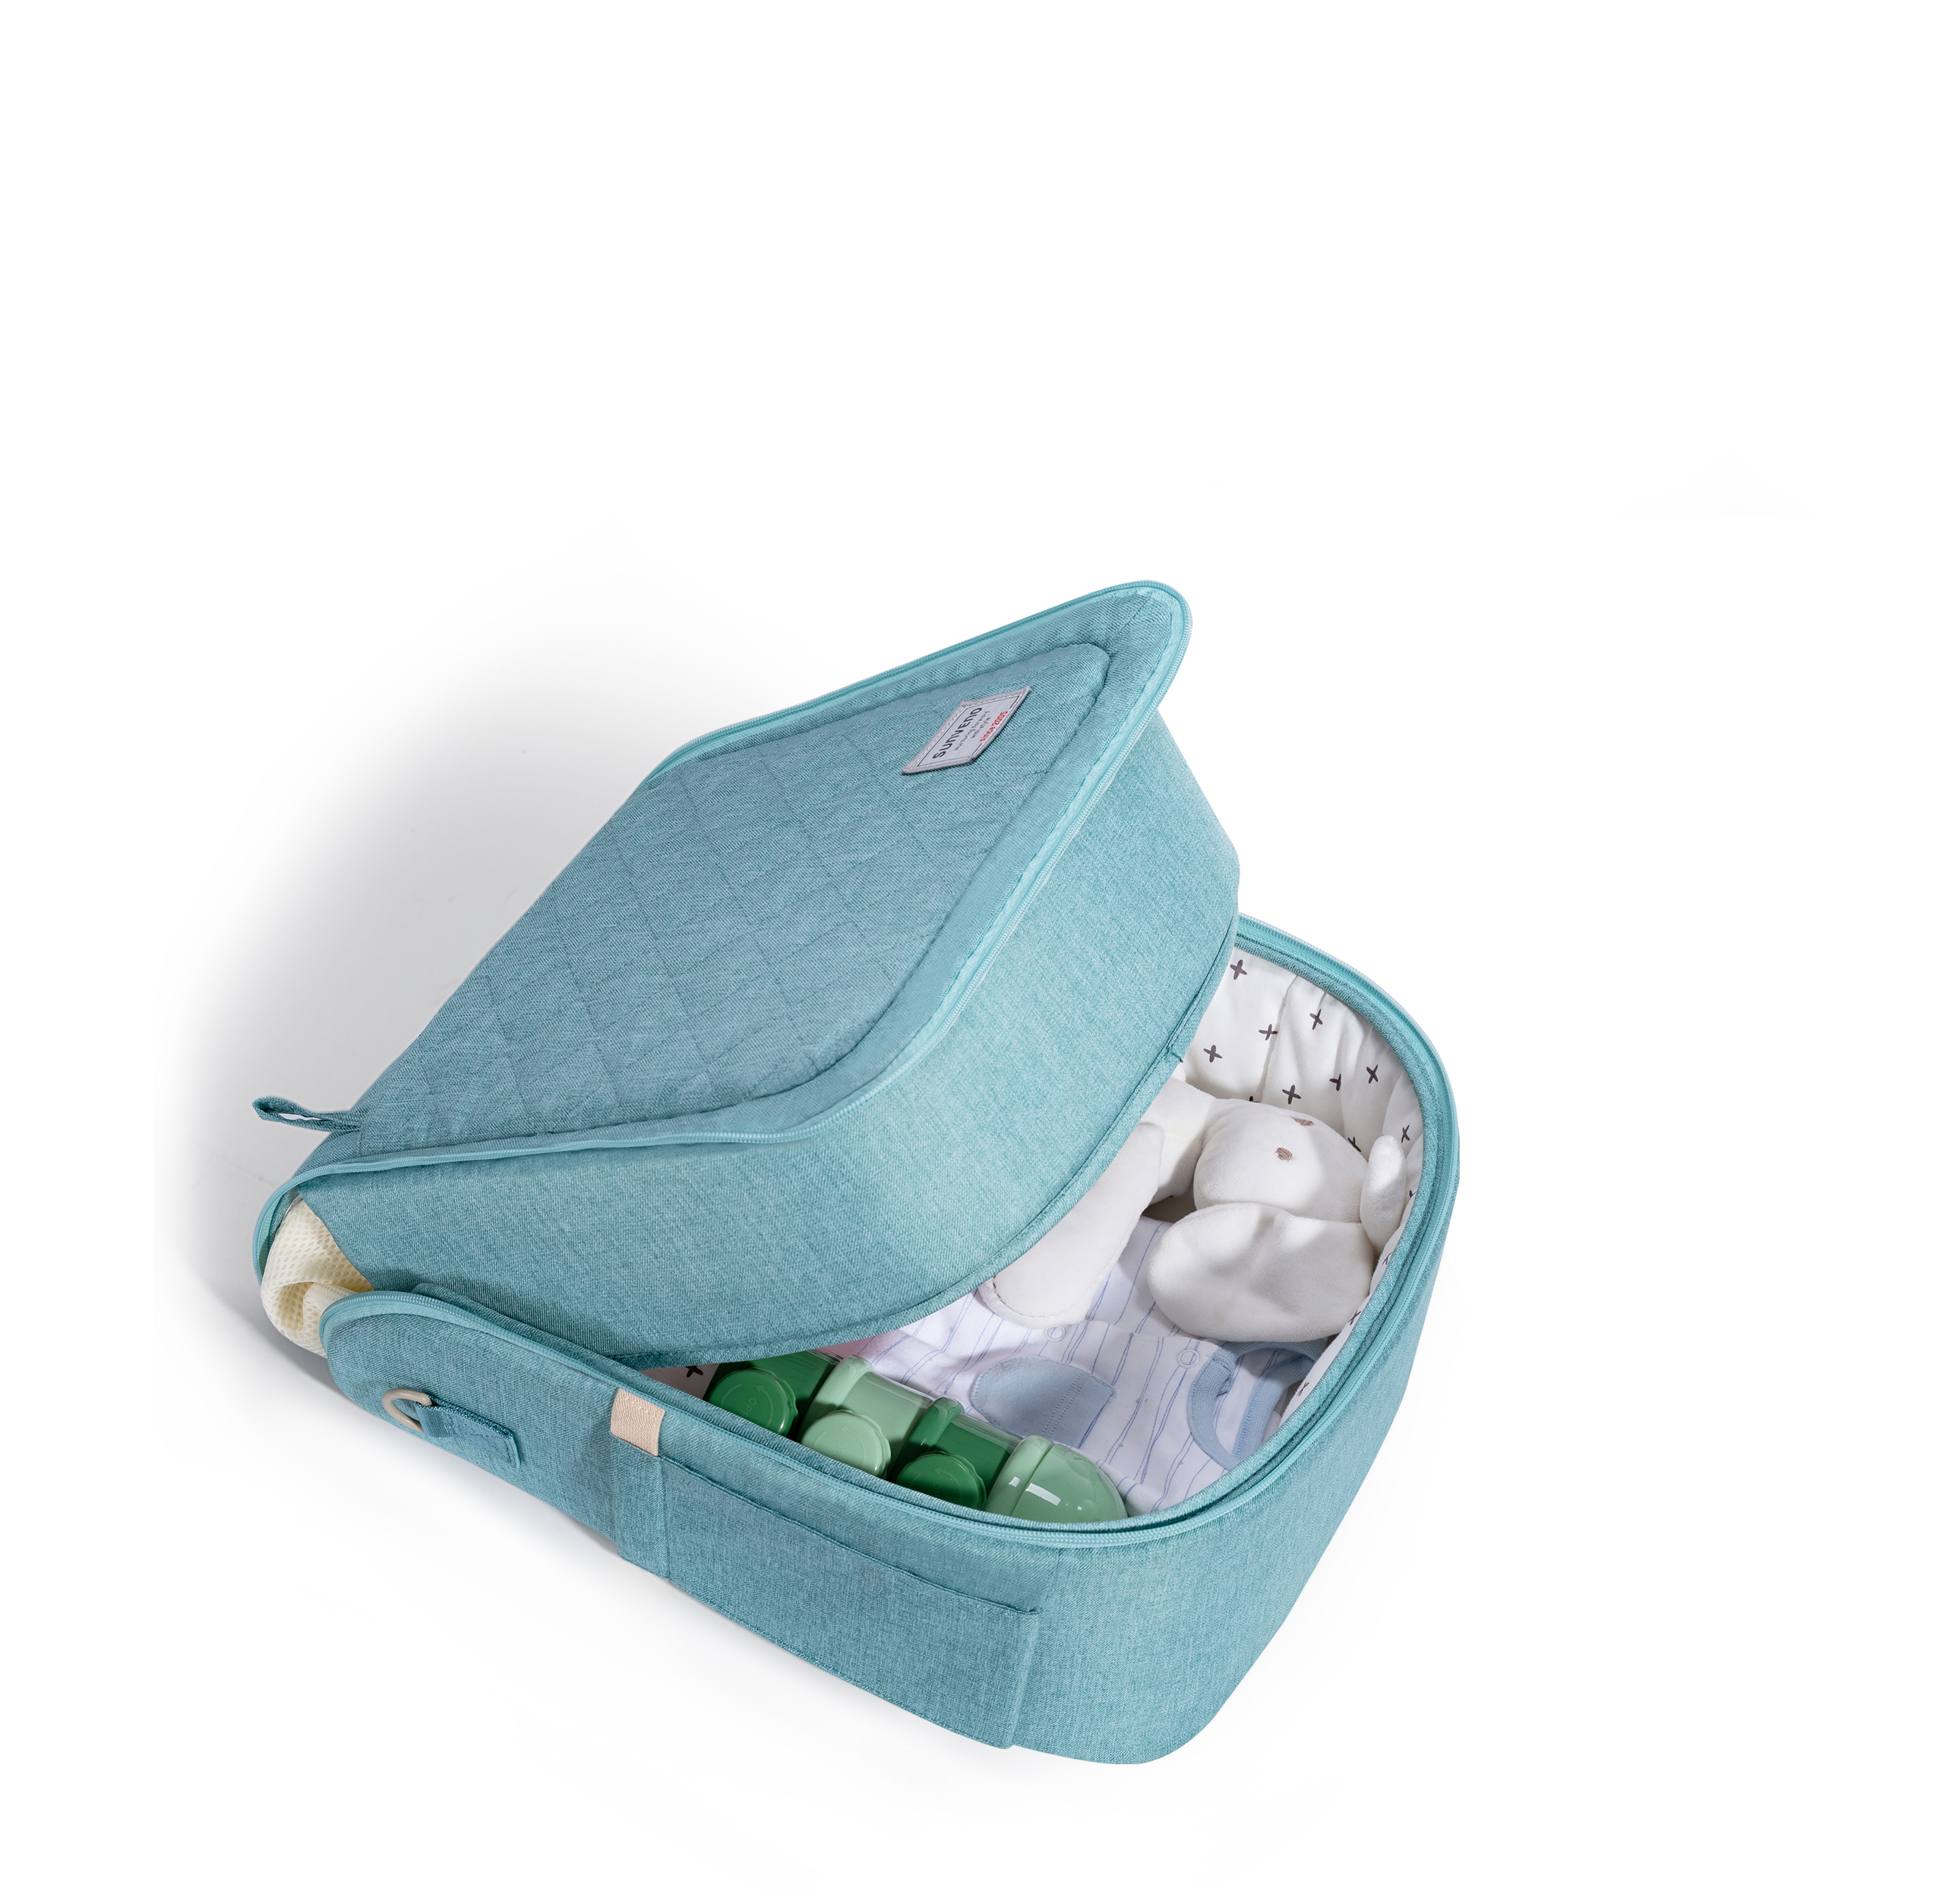 Sunveno 2in1 Baby Travel Bag Bed Foldable Bed Nest Baby Bed for Newborn Baby Infant